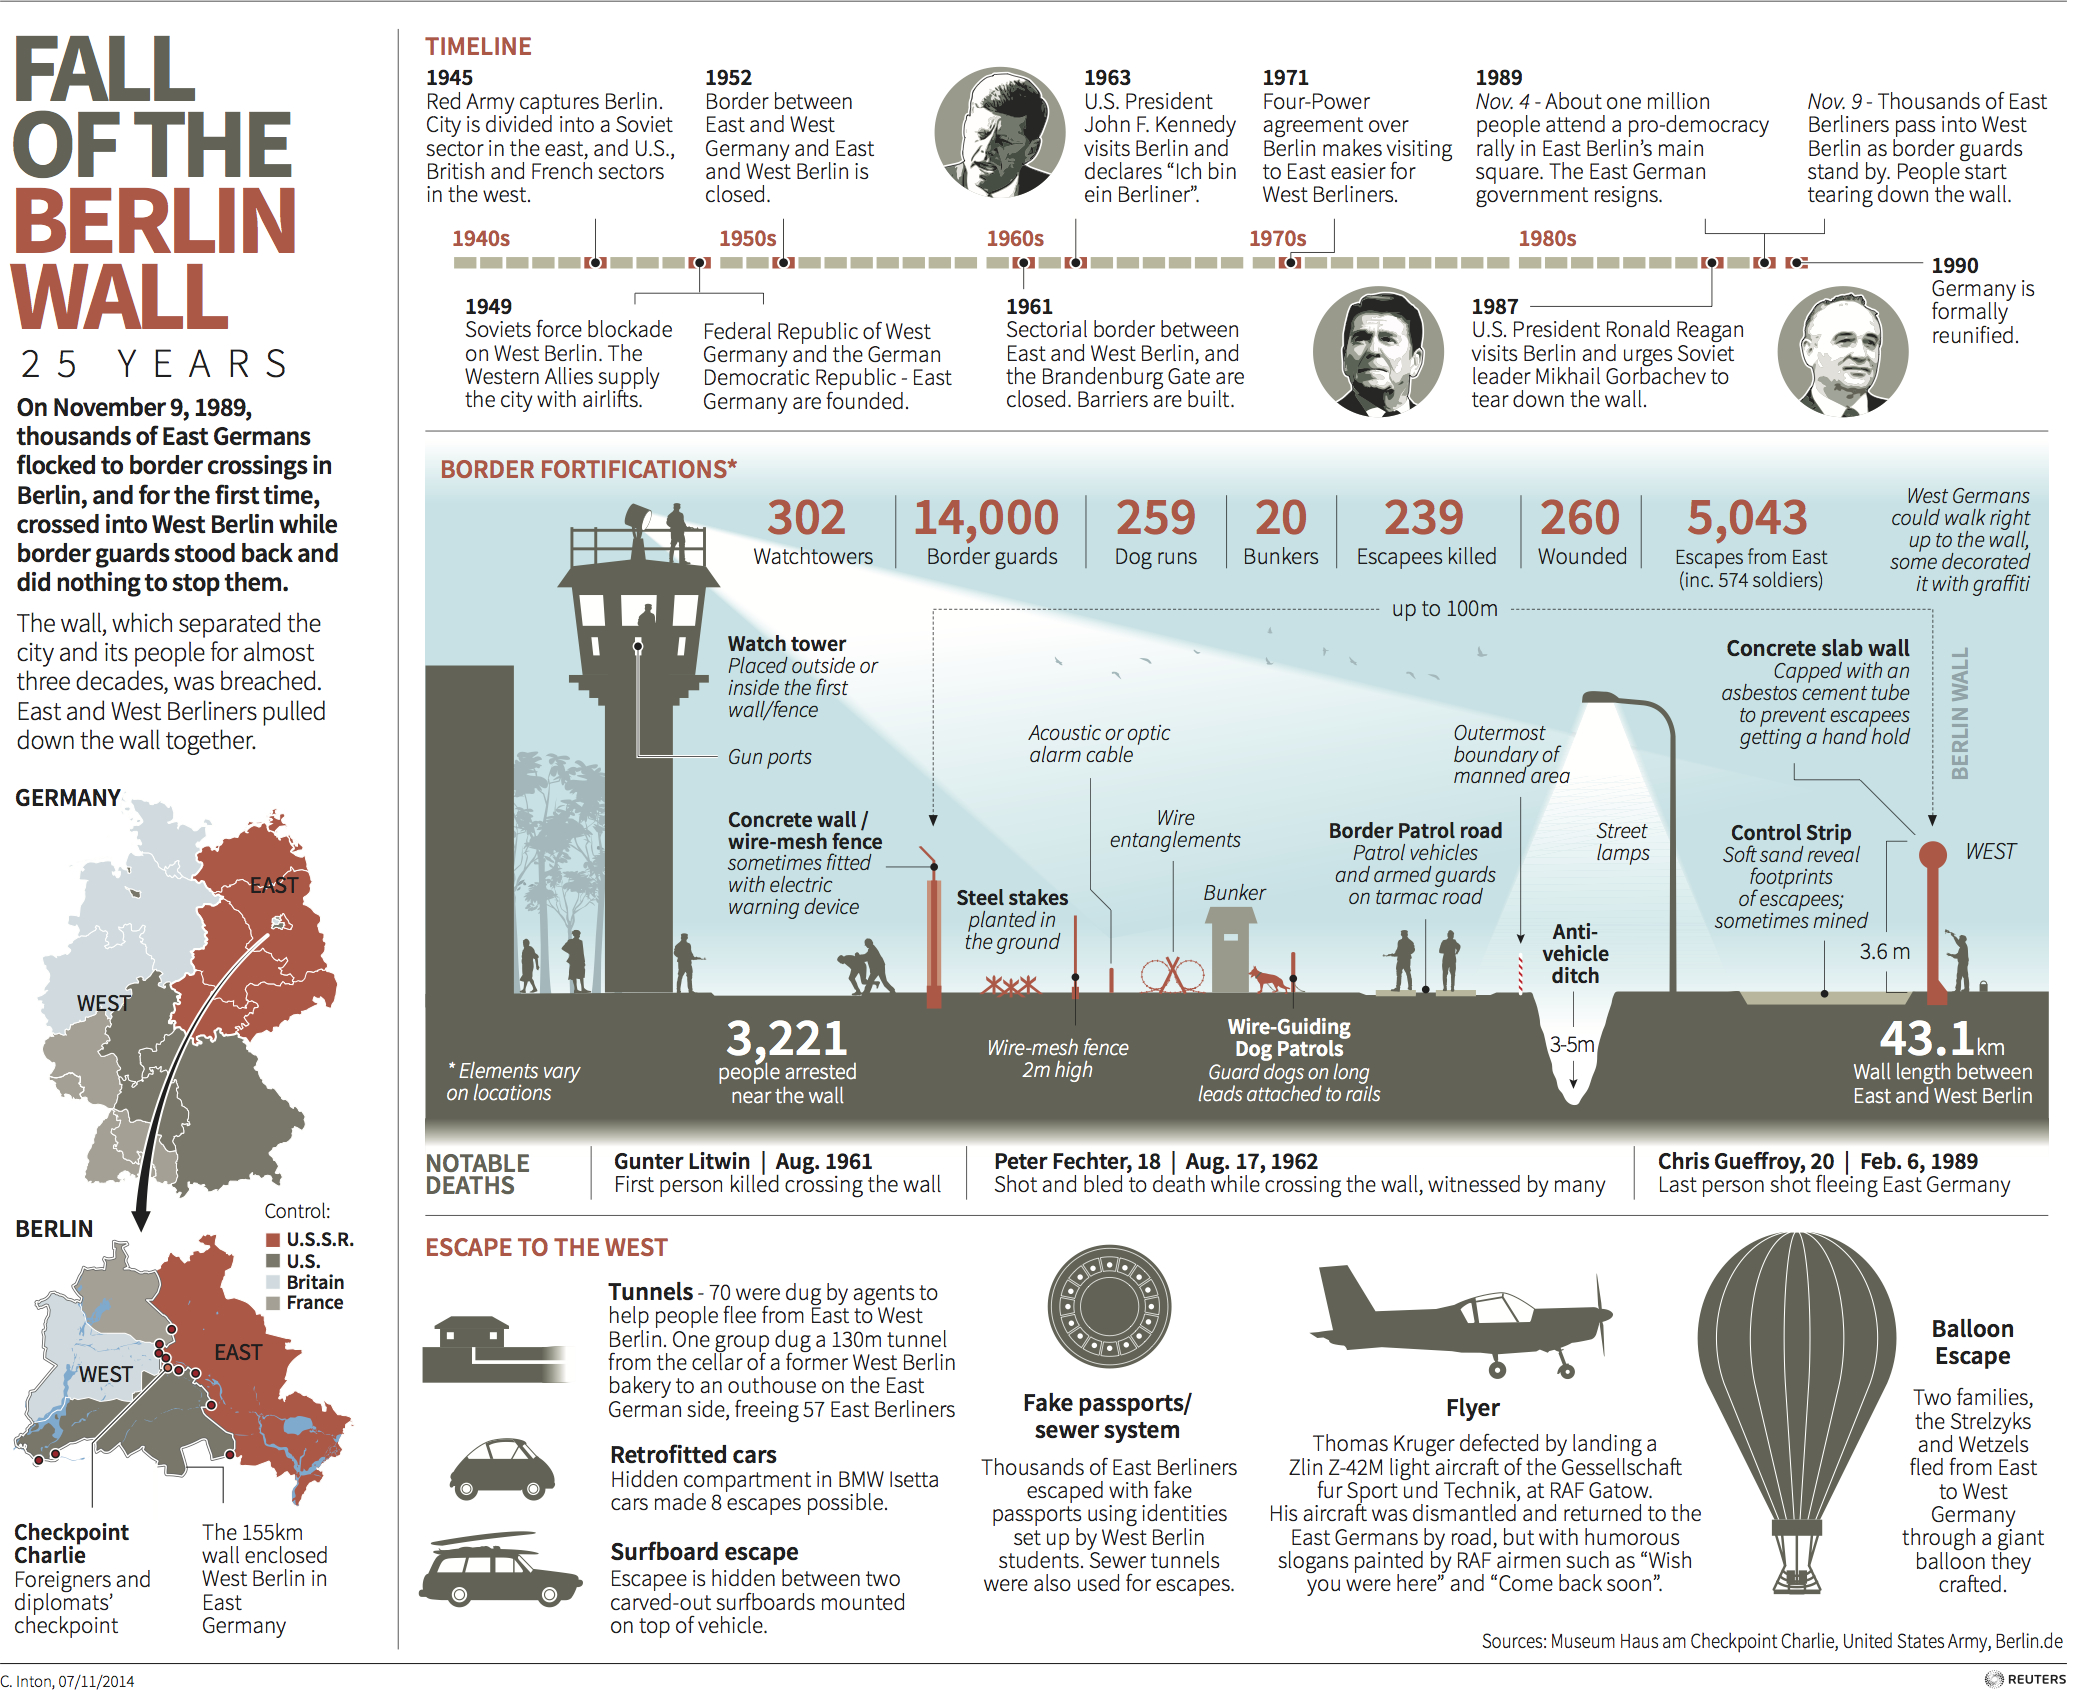 Infographic by Reuters press agency to mark the 25th anniversary of the fall of the Berlin Wall, 2014.